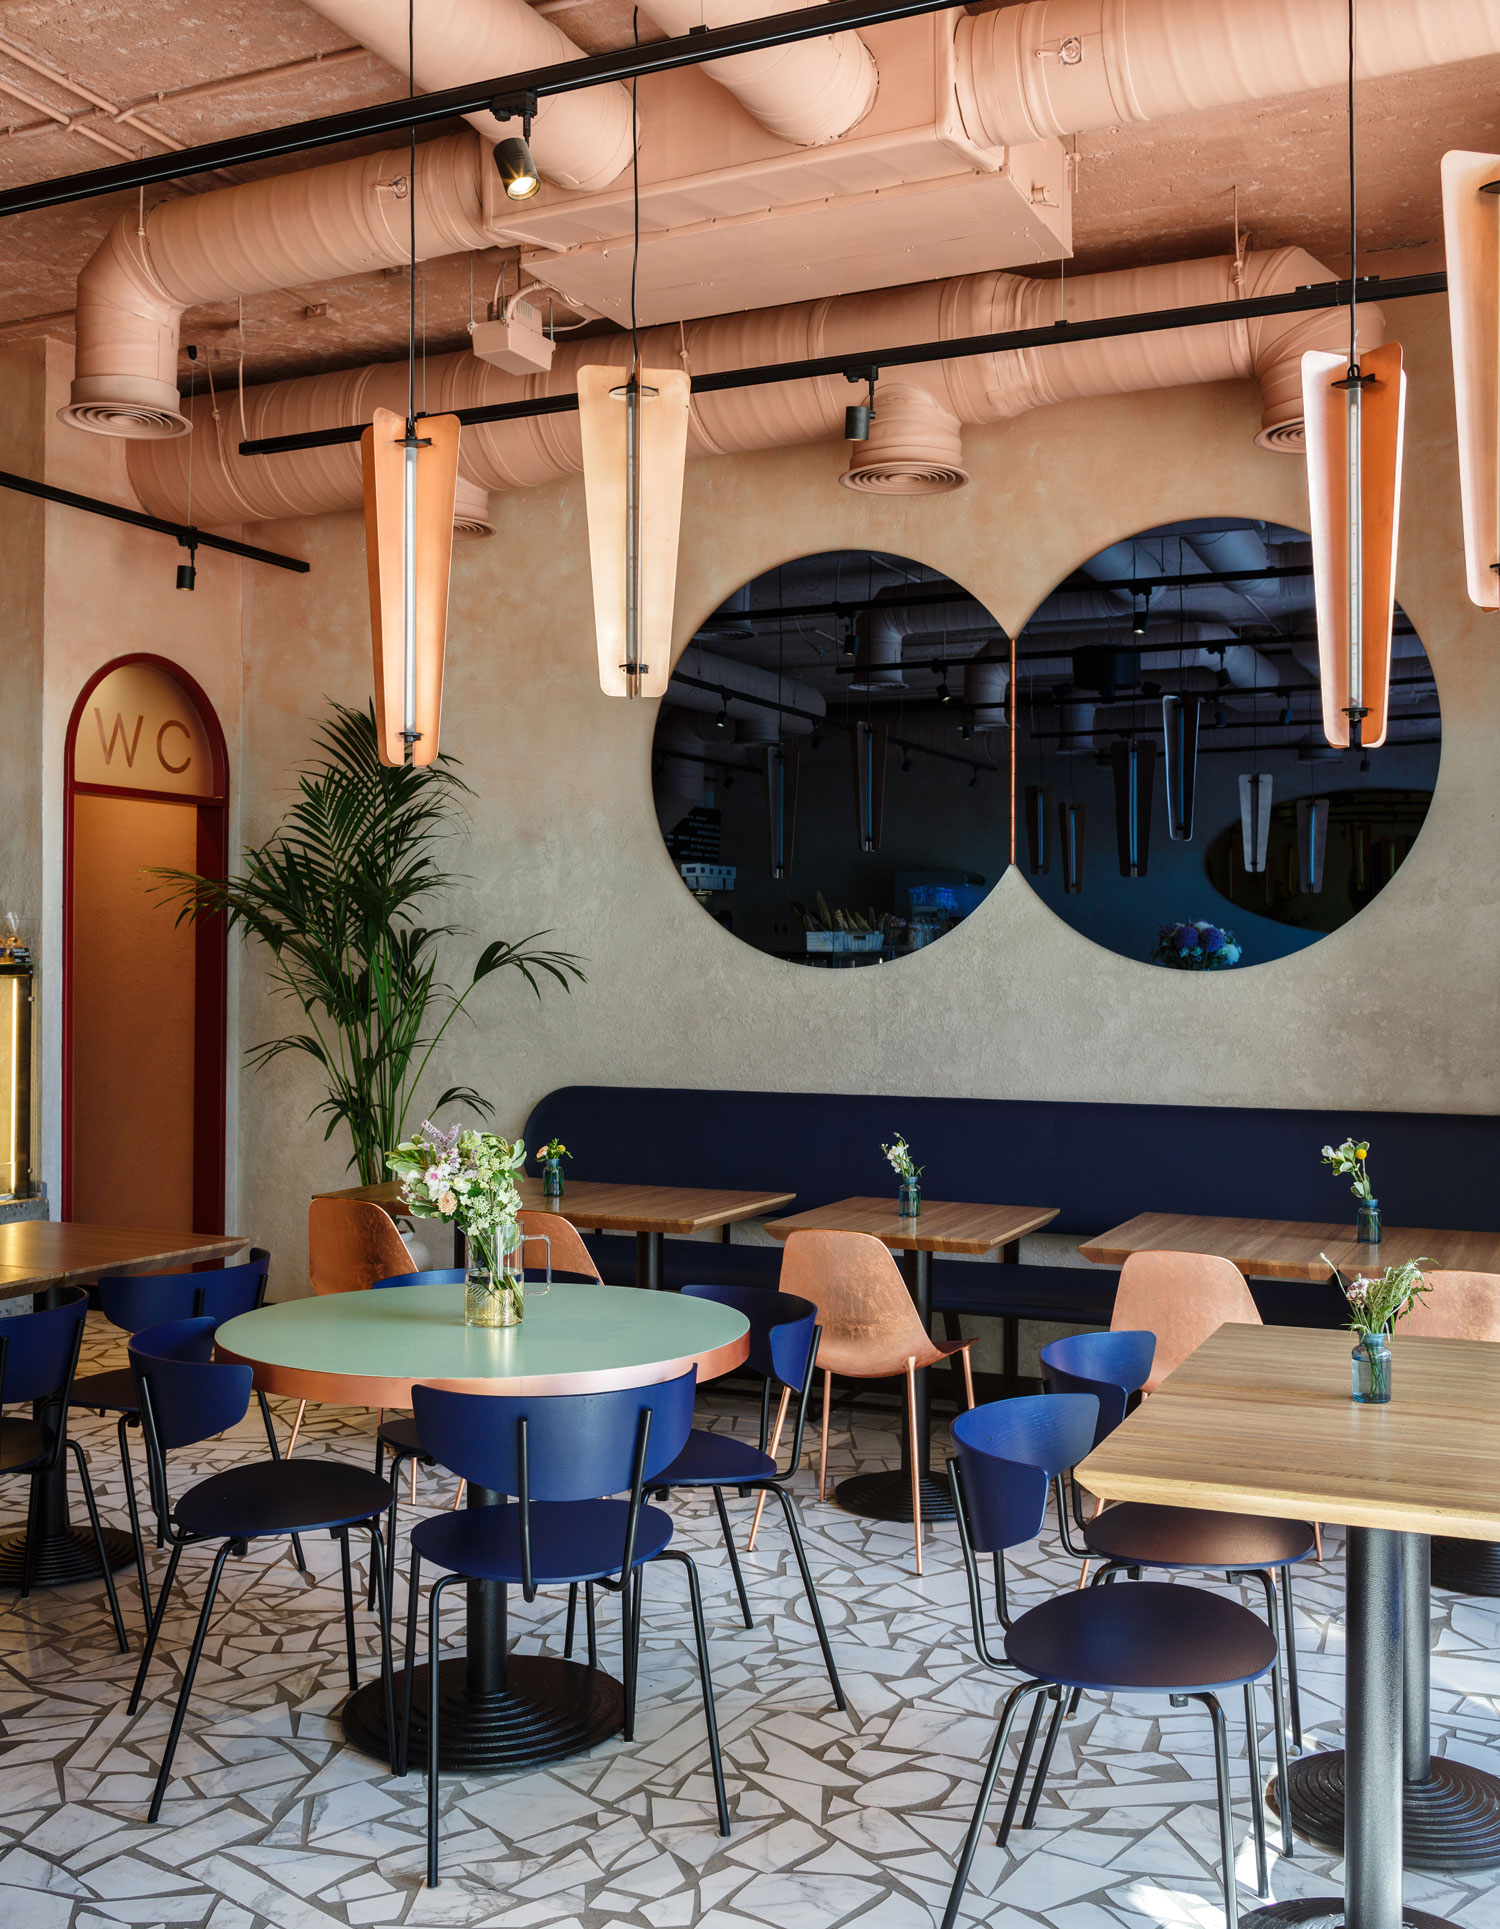 Cookers-Restaurant-in-Moscow-by-VETER-DESIGN-Yellowtrace-09.jpg